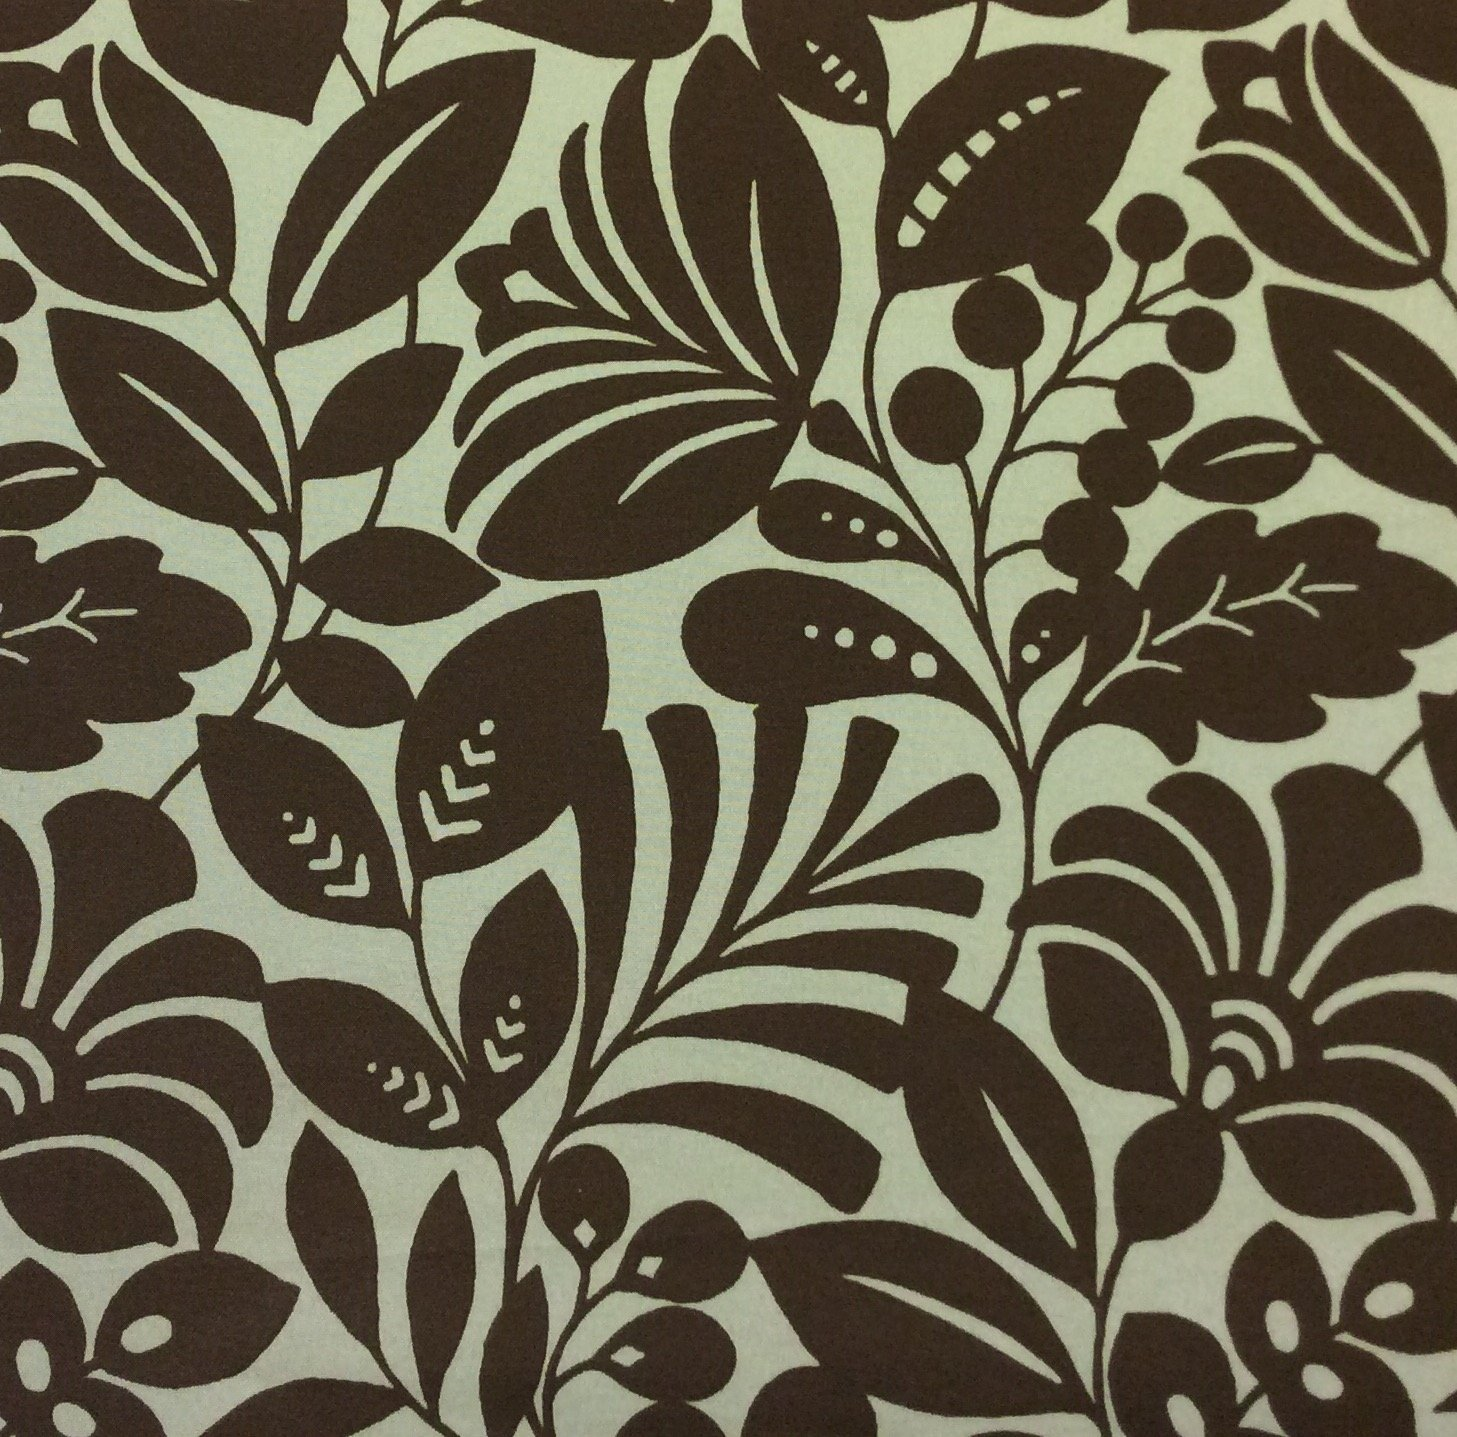 Retro Inspired Aqua and Olive Brown Floral Palm Frond Indoor Outdoor Home Decor Fabric SM22